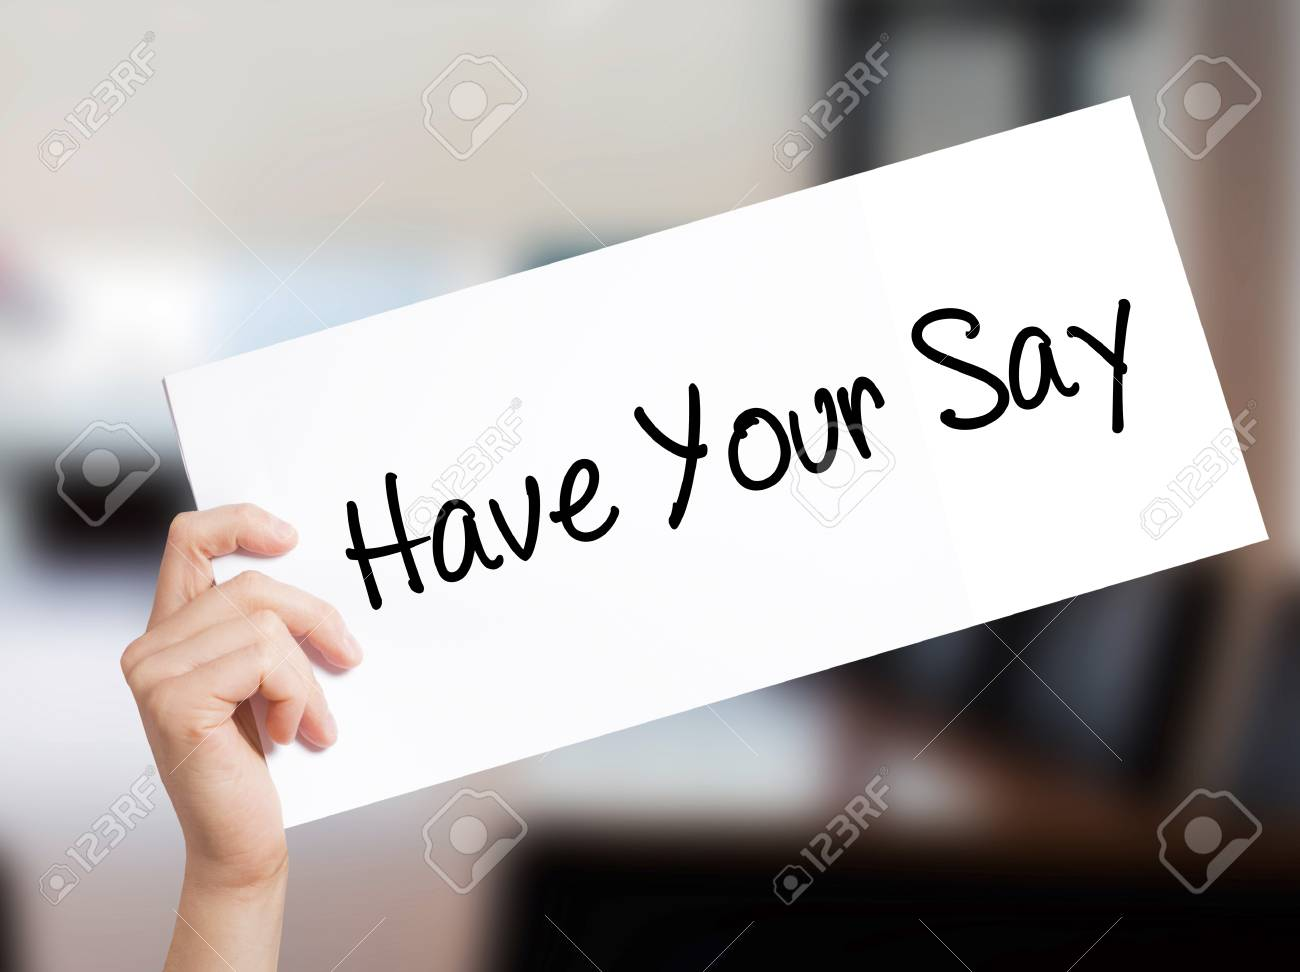 Have Your Say Sign on white paper. Man Hand Holding Paper with text. Isolated on Office background. Business concept. Stock Photo - 78209217